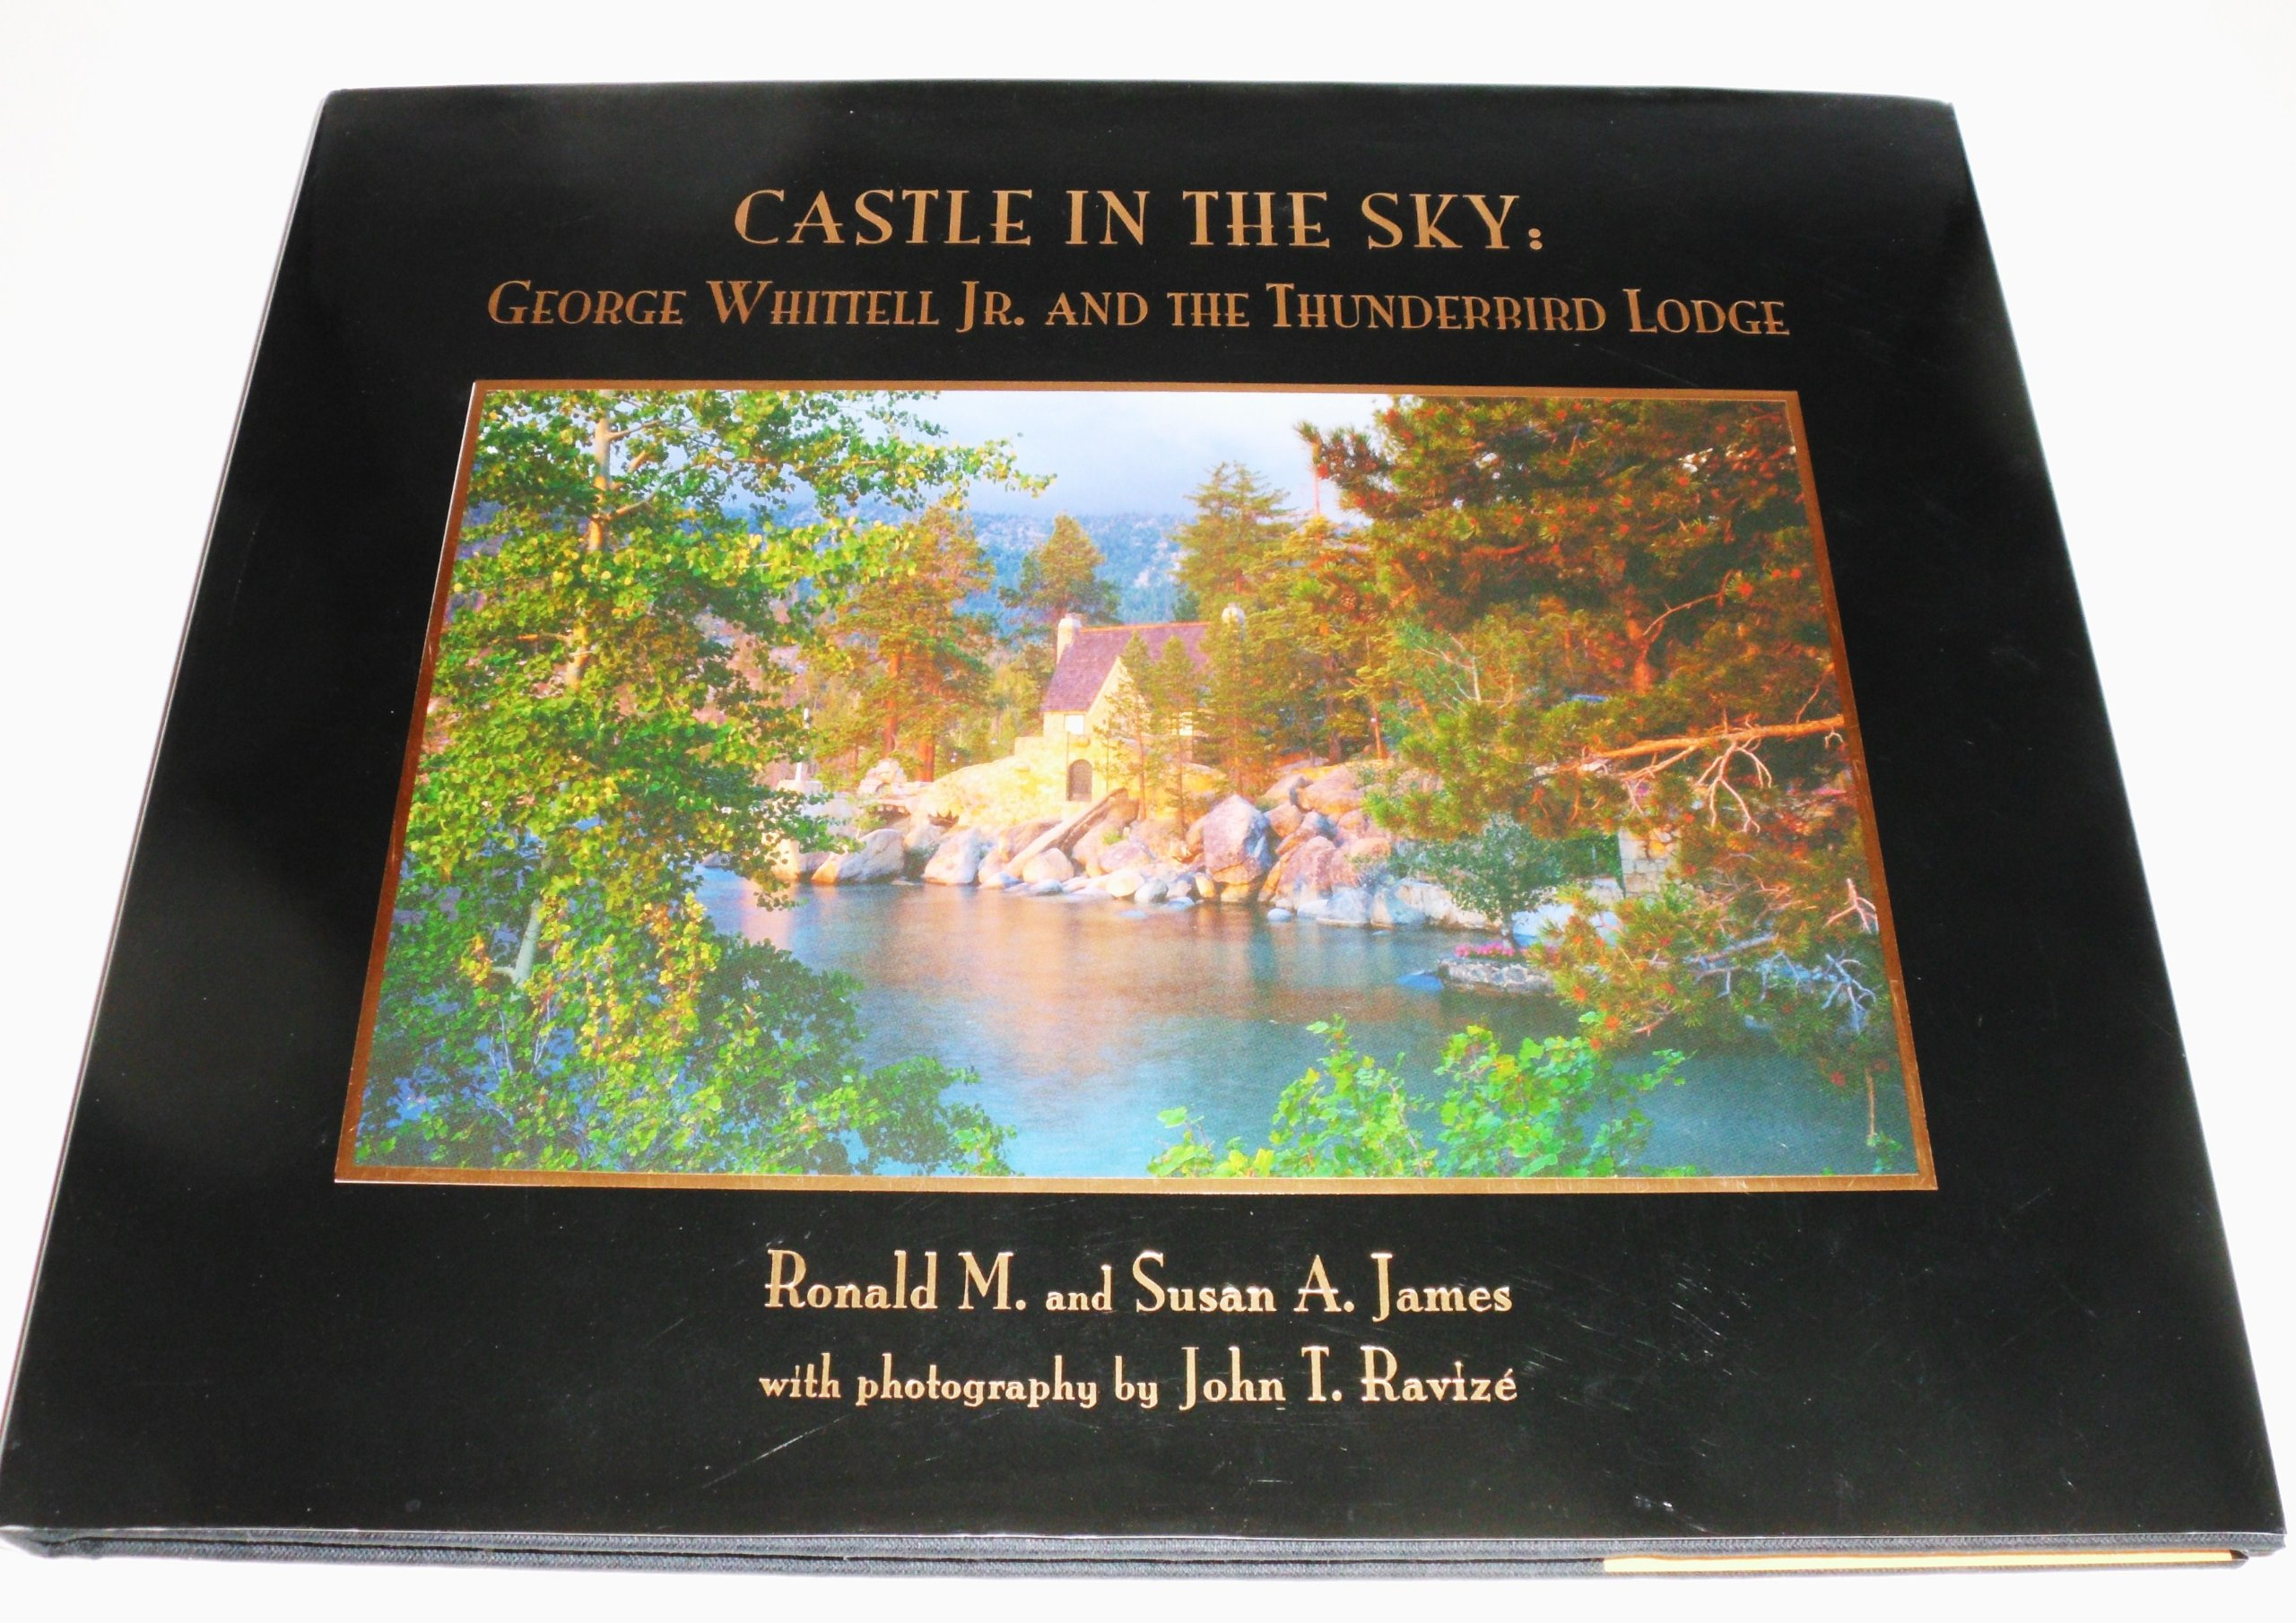 Castle in the sky: George Whittell Jr. and the Thunderbird Lodge PDF ePub book